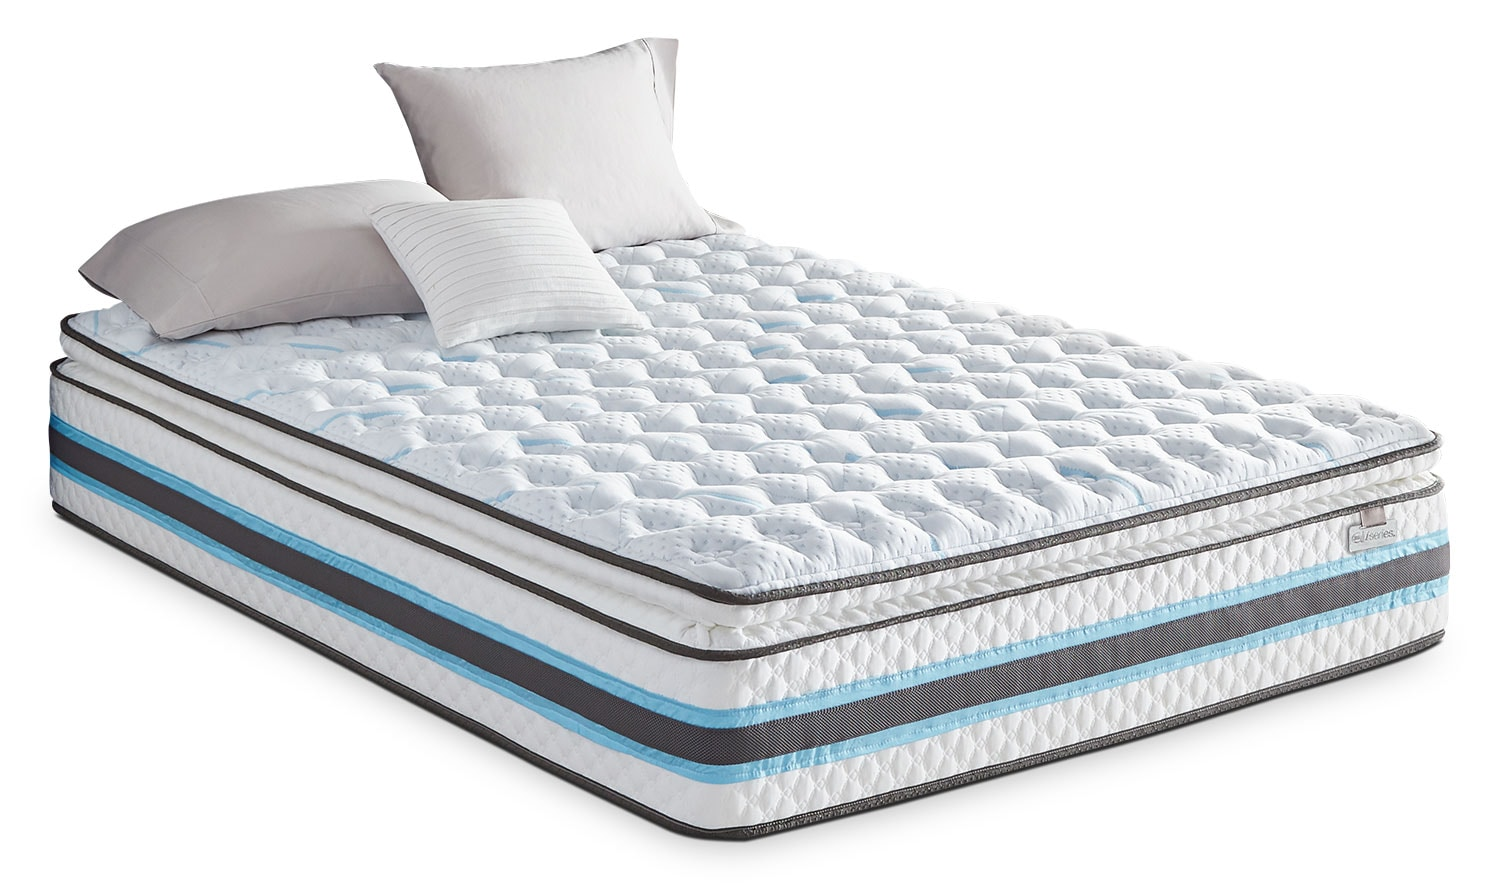 Mattresses and Bedding - Serta iSeries® Breathtaking Pillow-Top Firm Twin Mattress